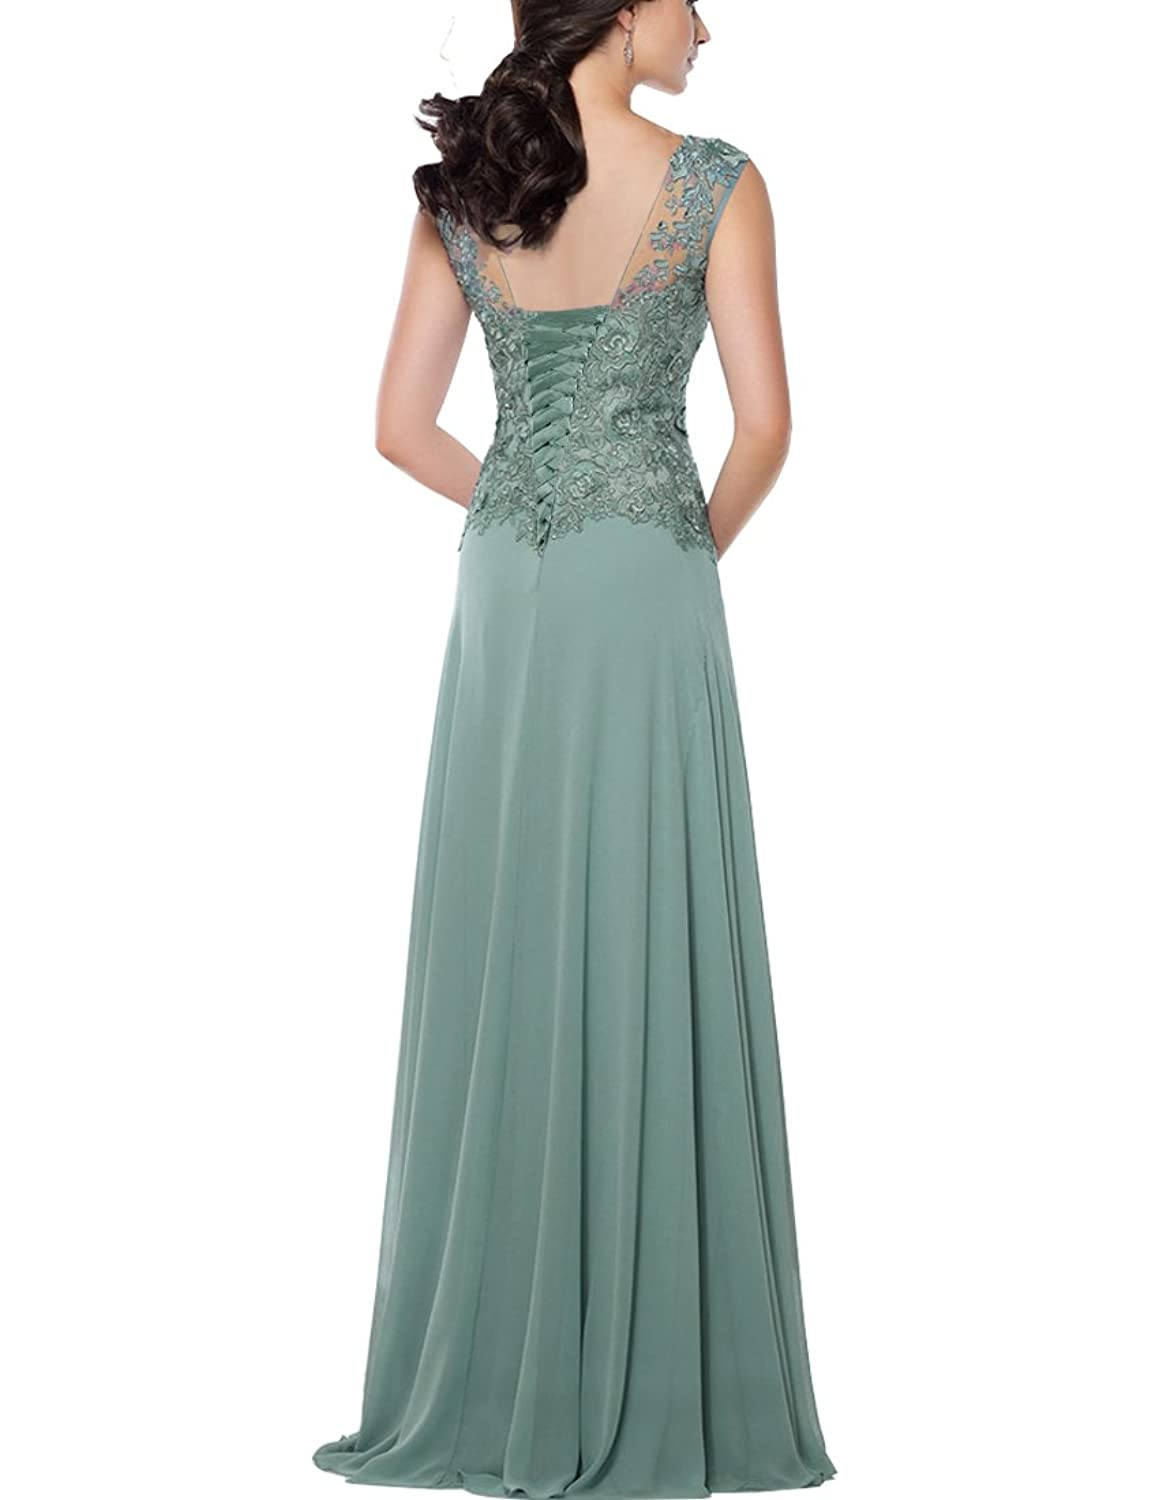 Alinafeng Dress Womens V Neck Lace Chiffon Mother of the Bride ...